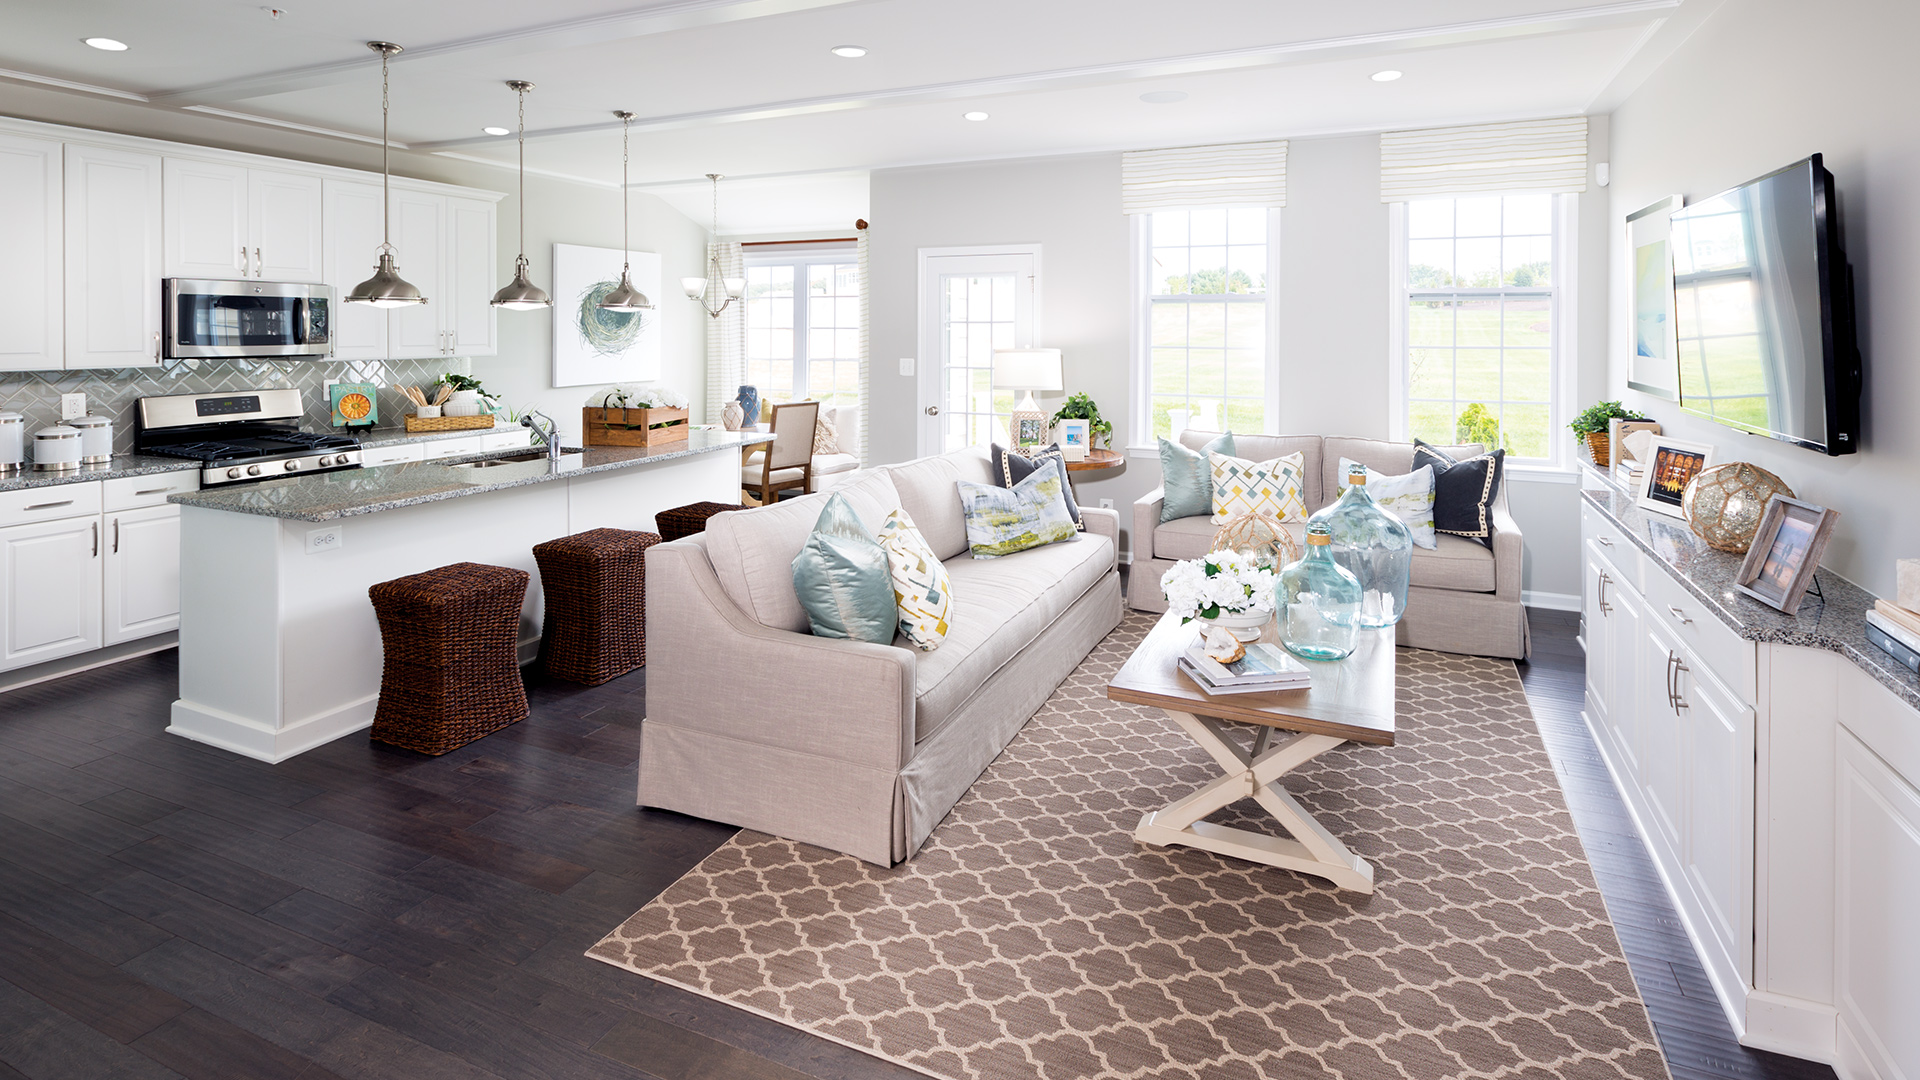 Laurel Ridge - The Meadows | The Portsmouth Home Design